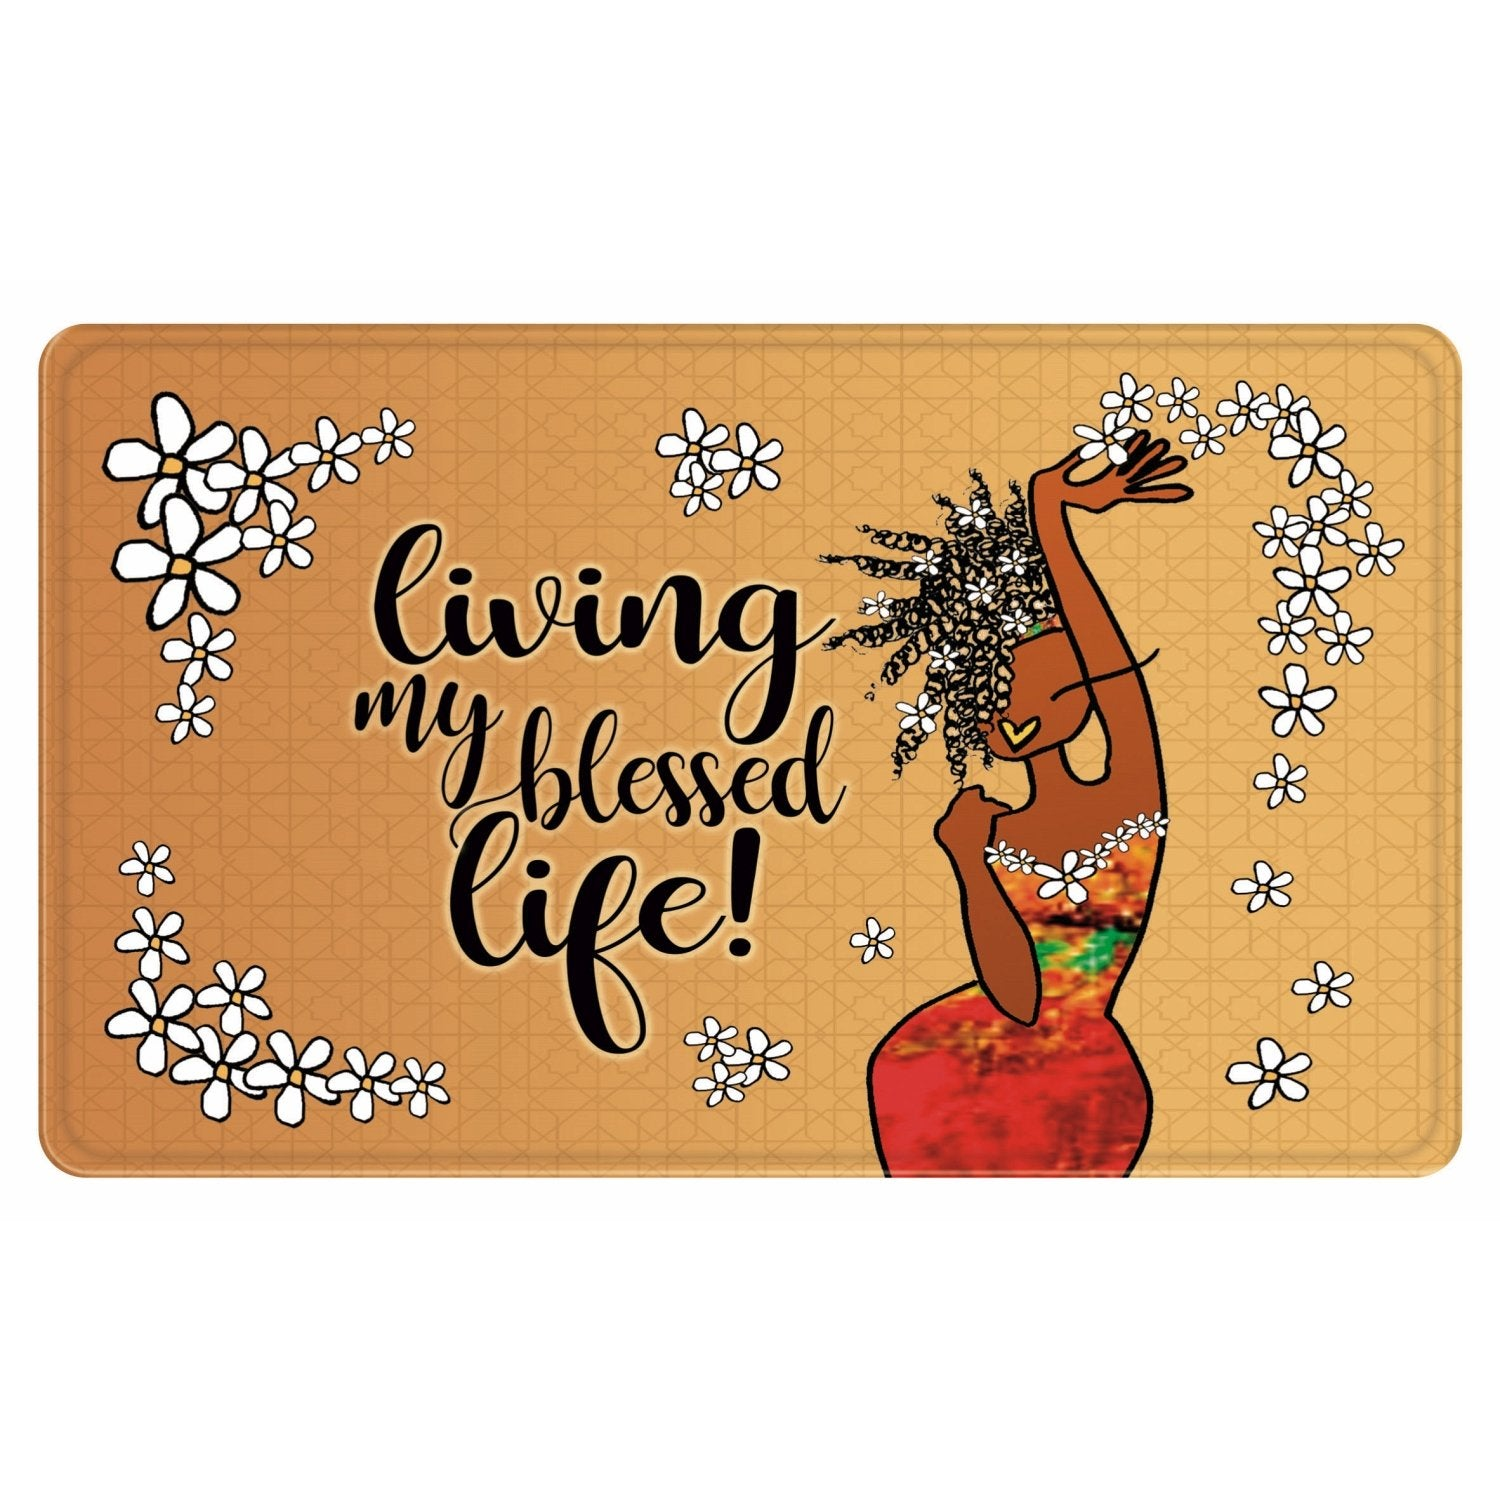 Living My Blessed Life: African American Memory Foam Mat by Kiwi McDowell